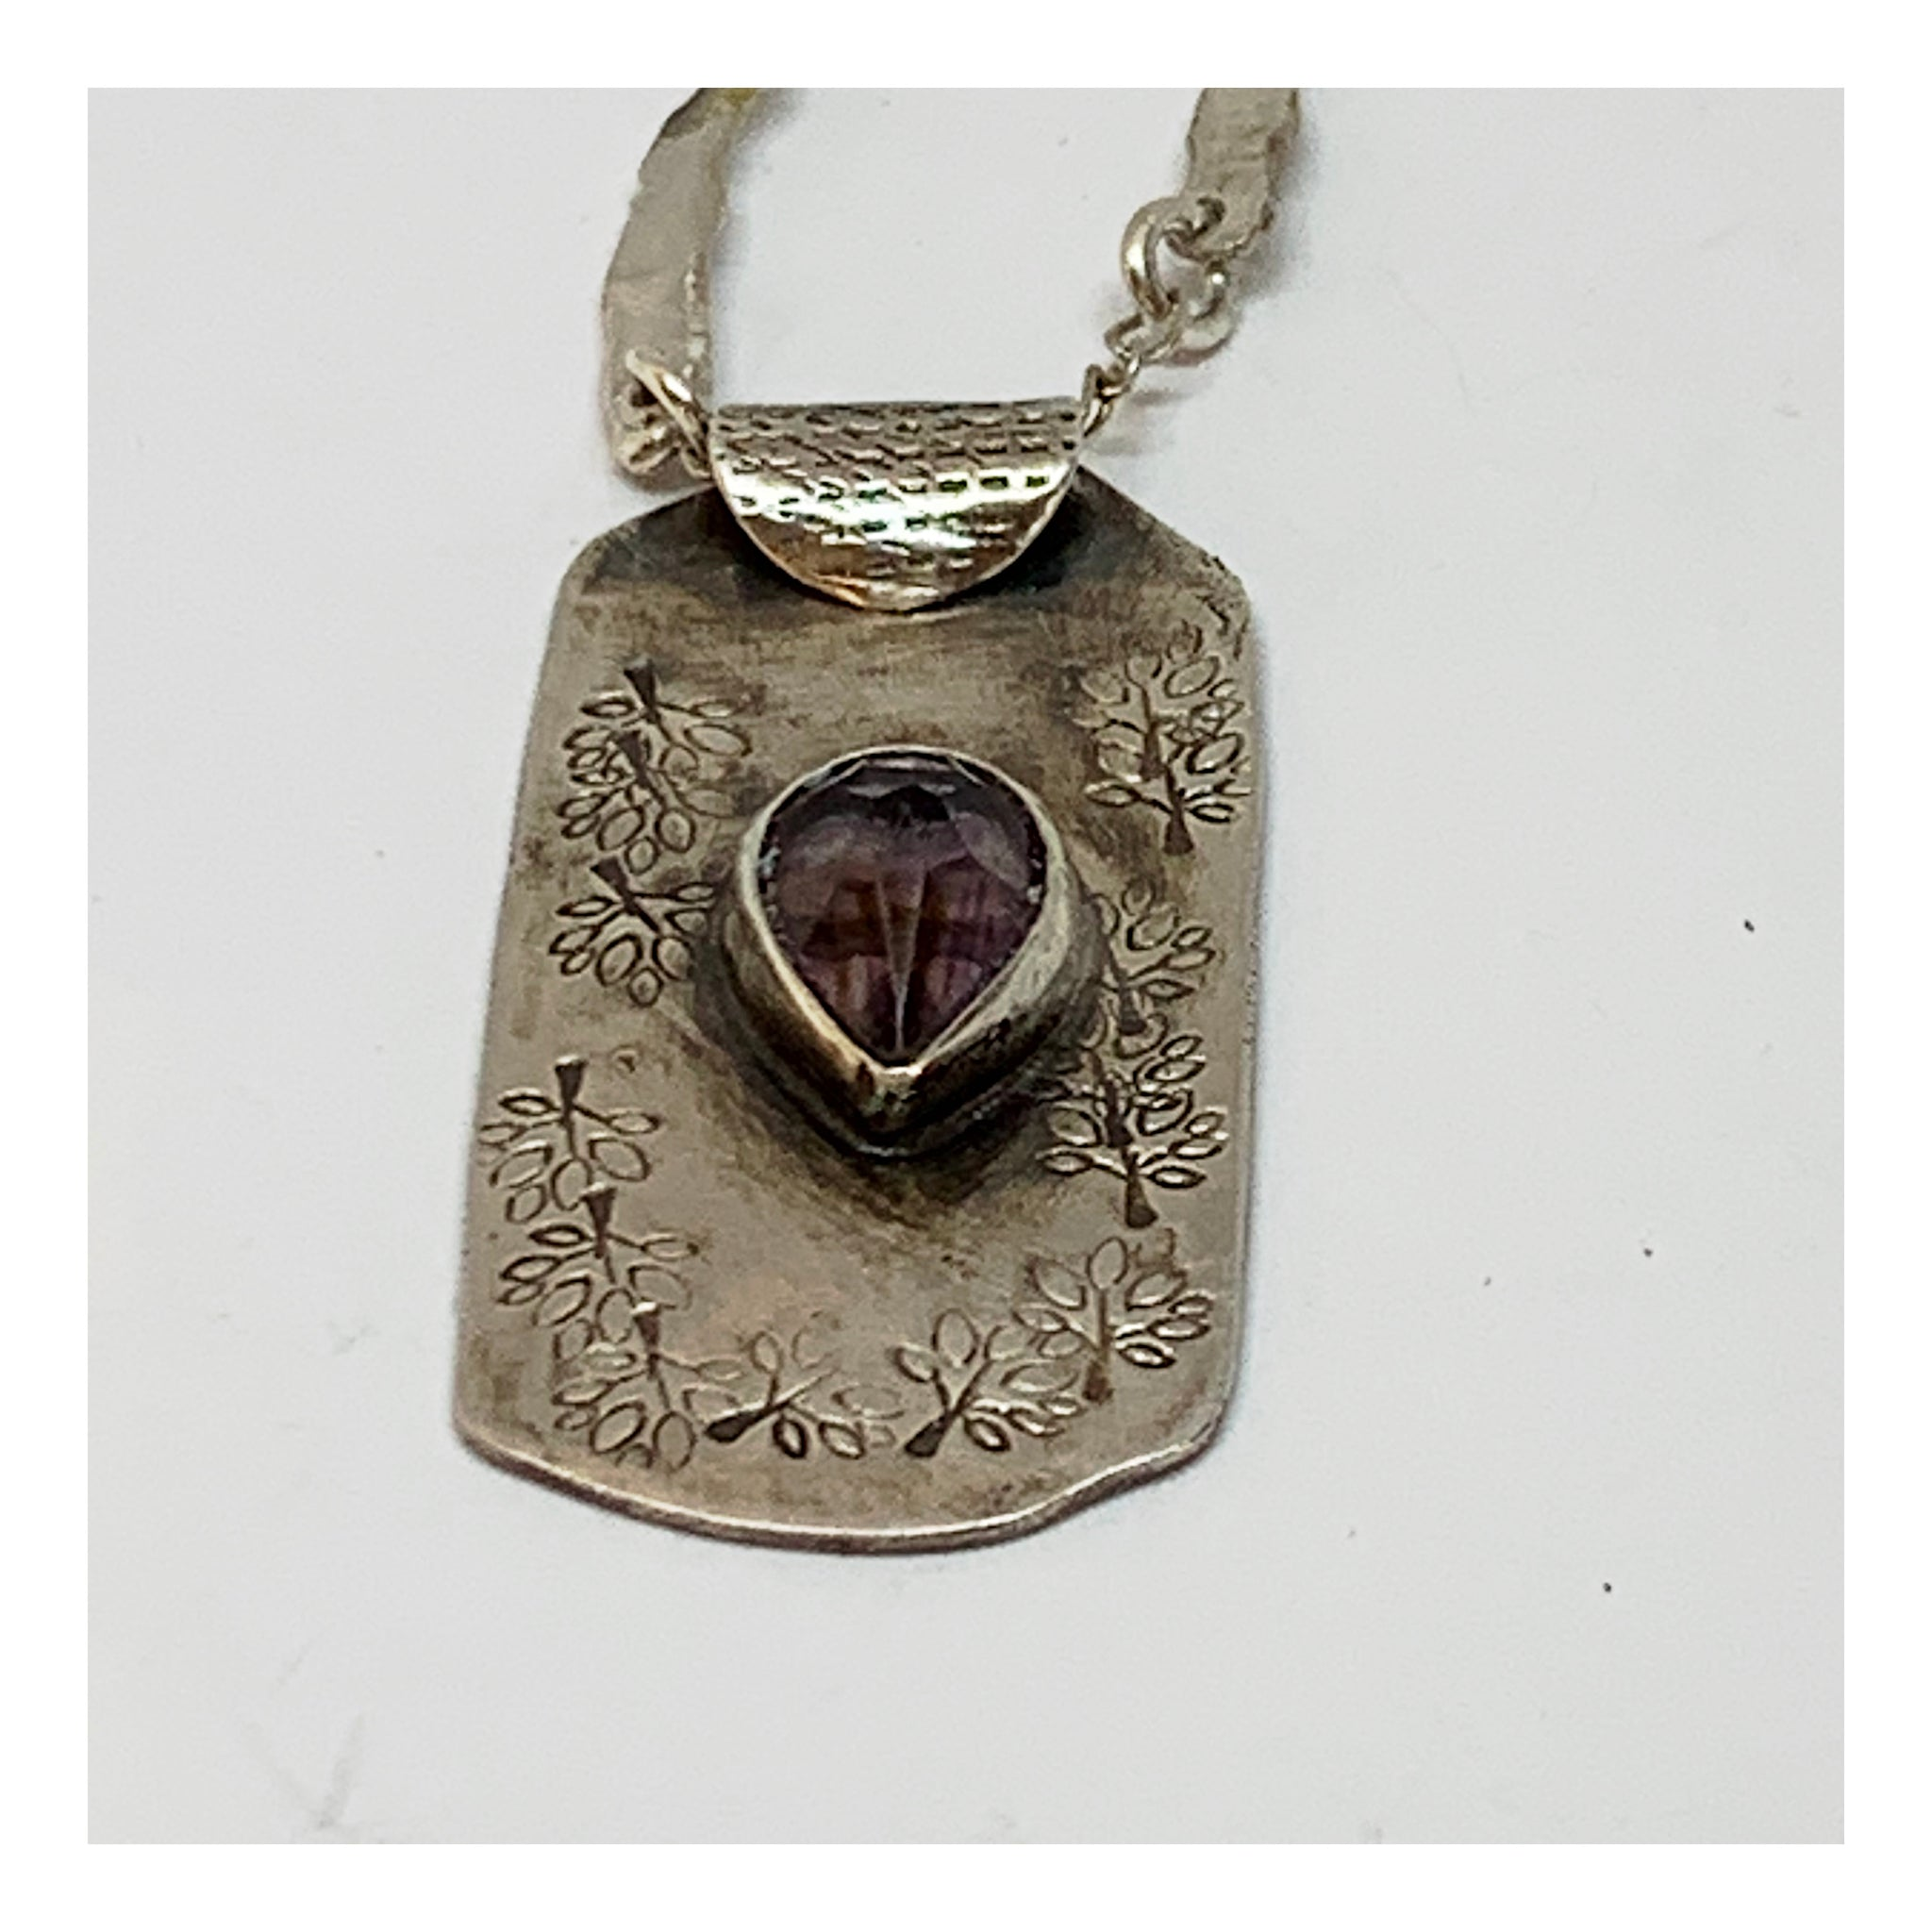 Vintage Look Sterling Necklace With Amethyst Stone - Recycled Jewelry Pieces